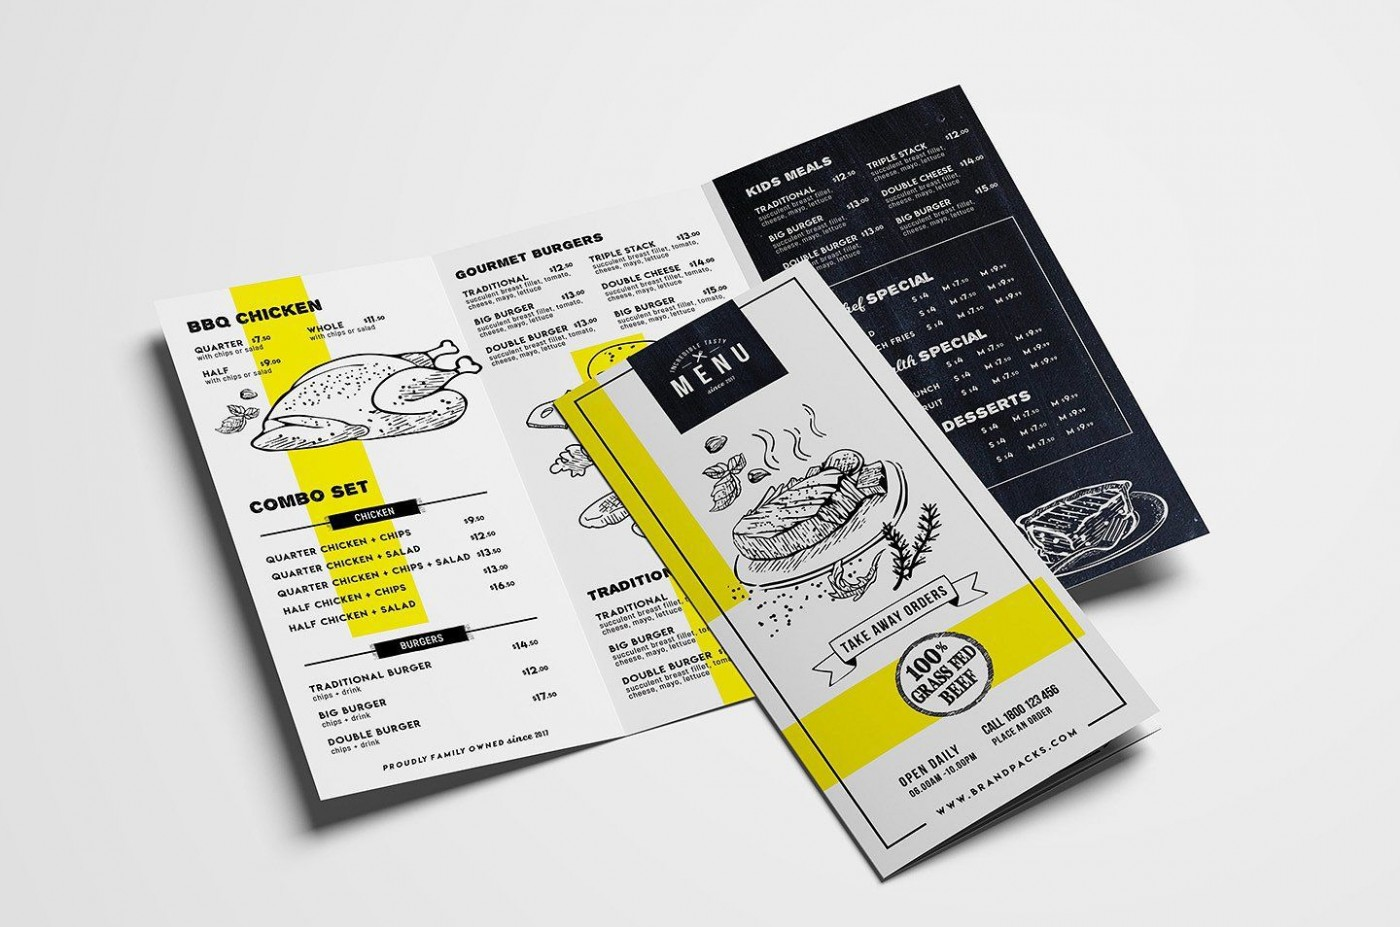 000 Fantastic Tri Fold Menu Template Free Highest Quality  Wedding Tri-fold Restaurant Food Psd Brochure Cafe Download1400